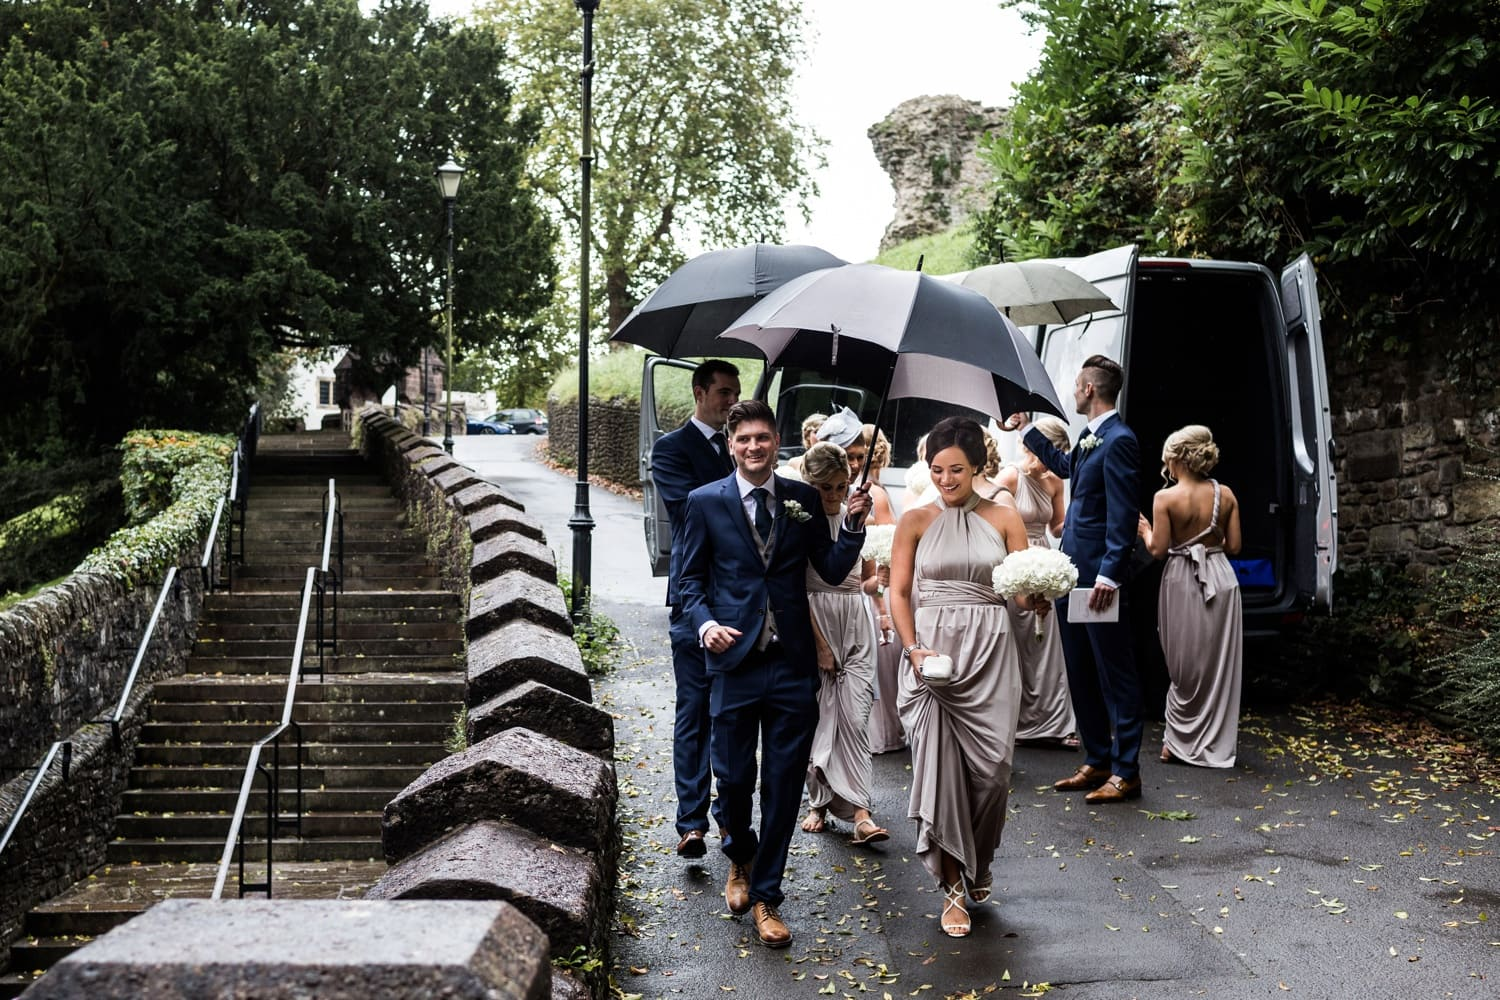 Bridesmaids escort to church under umbrellas